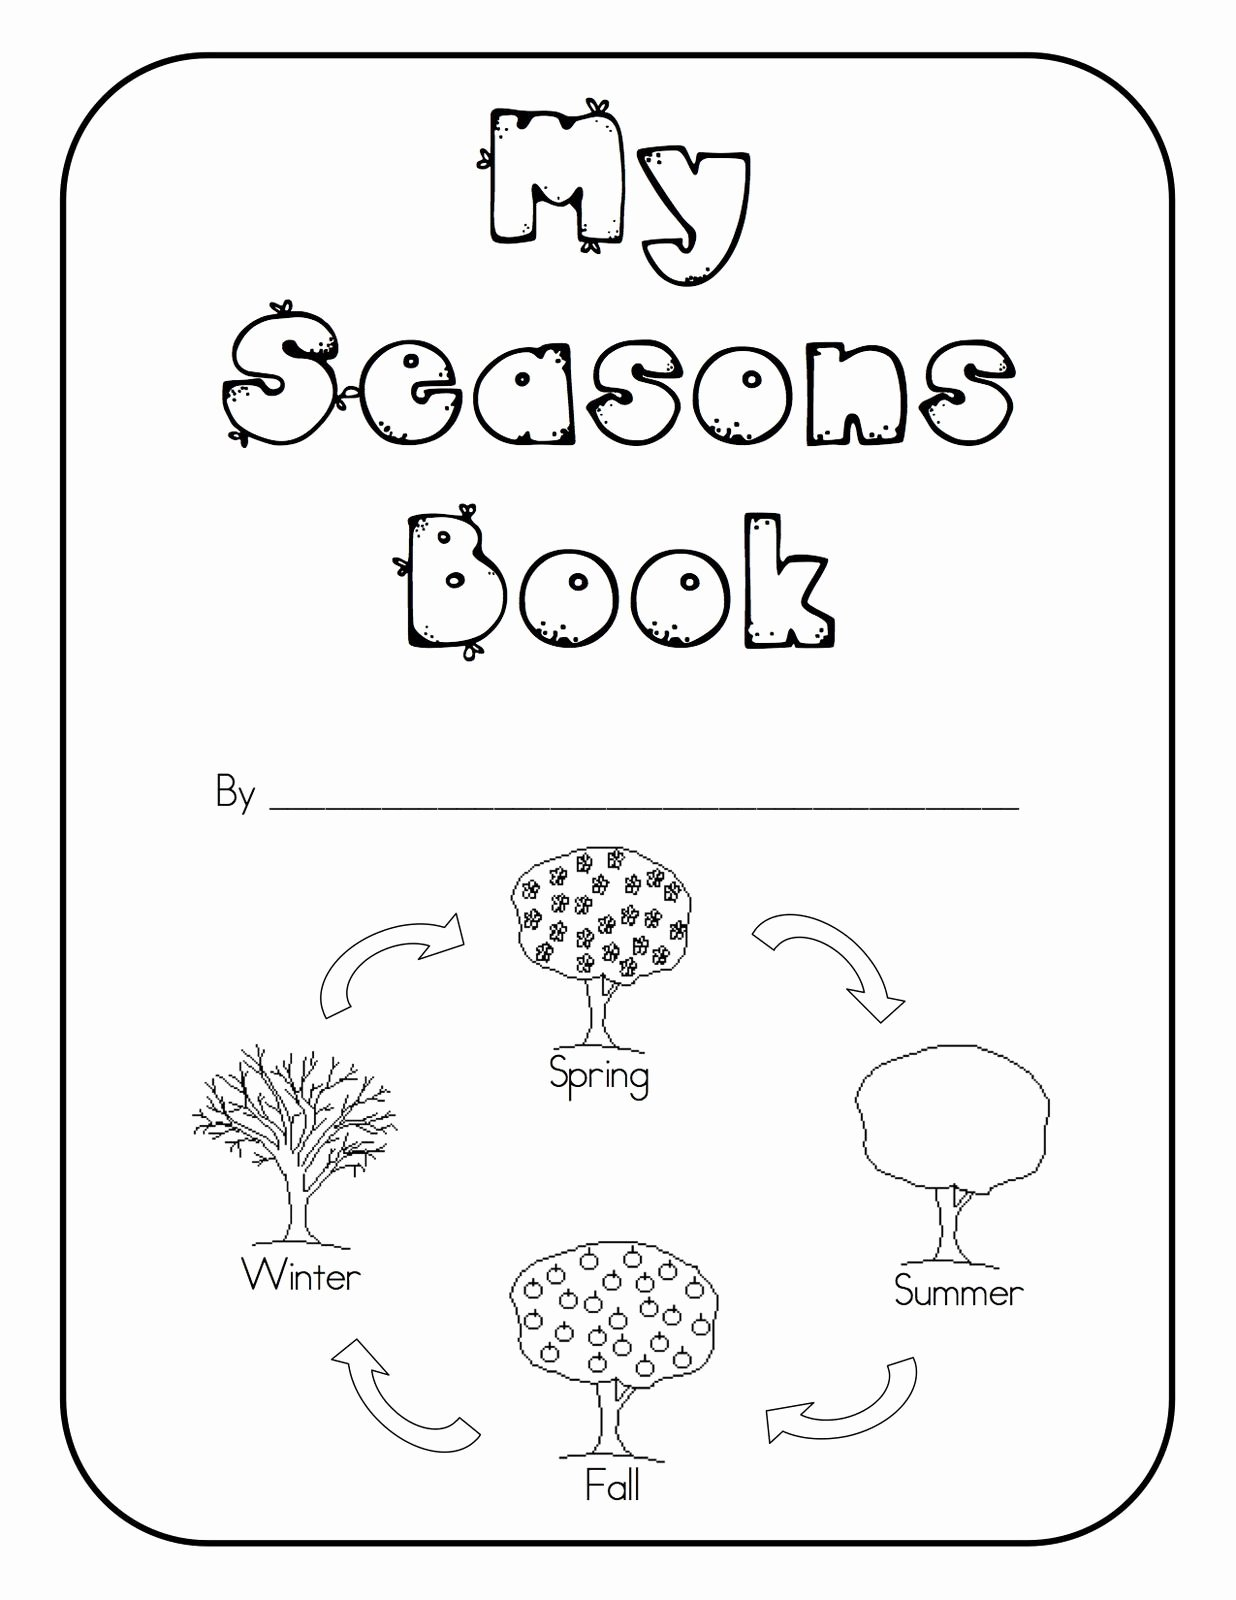 Simple Math Worksheets for Preschoolers Awesome Seasons Kindergarten Books Objects In the Sky Worksheets